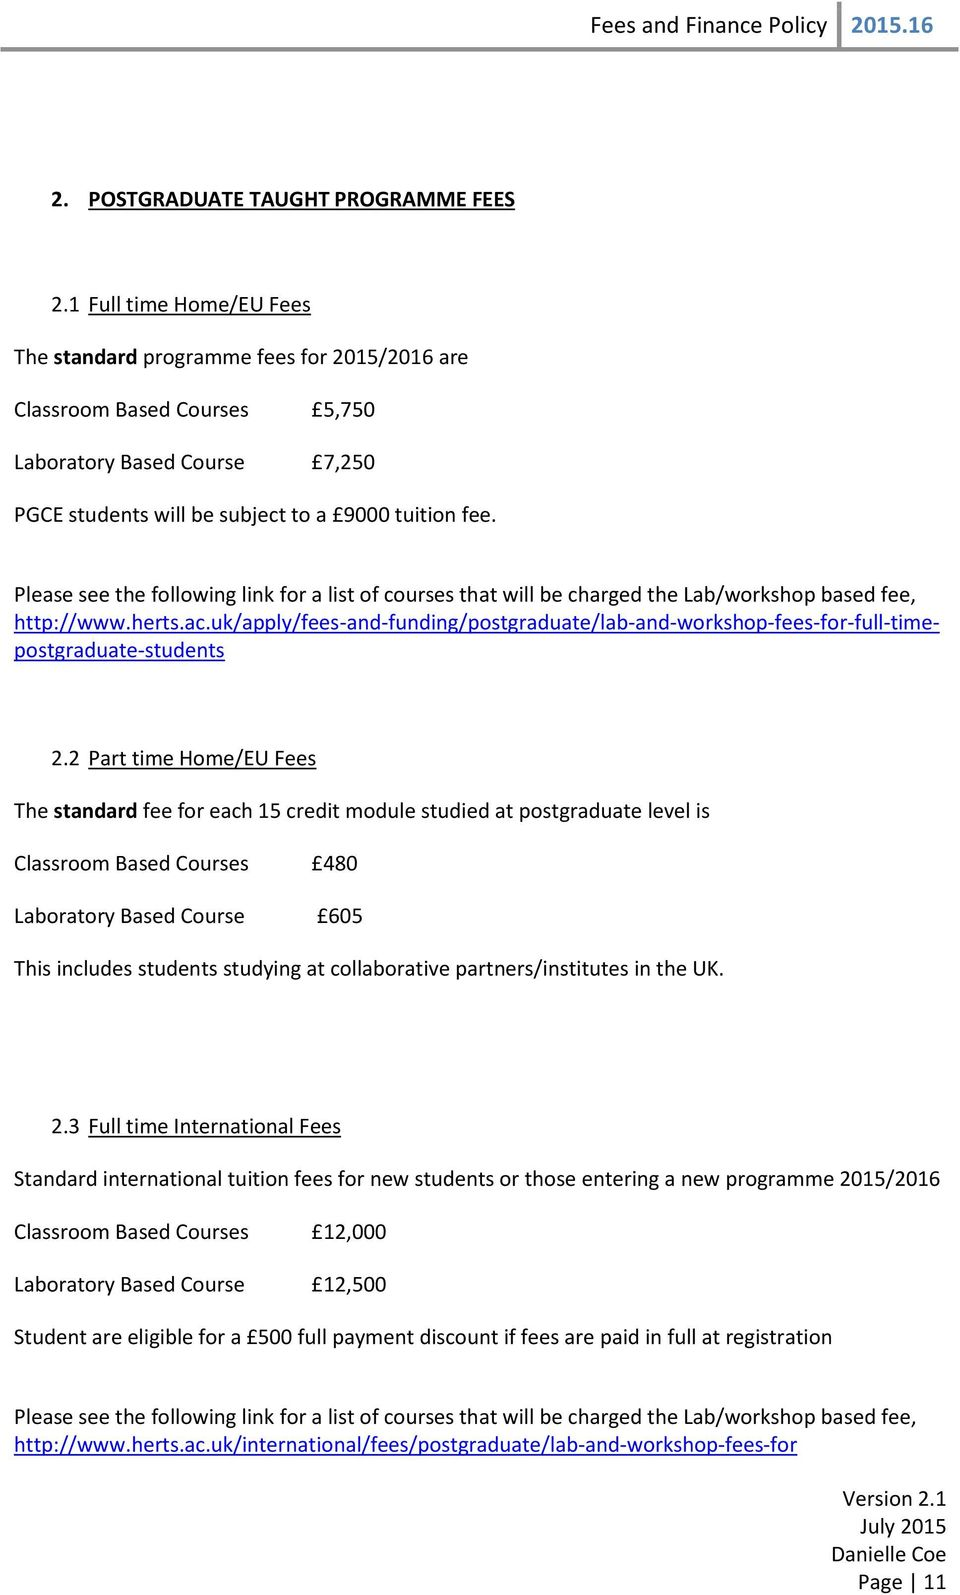 Please see the following link for a list of courses that will be charged the Lab/workshop based fee, http://www.herts.ac.